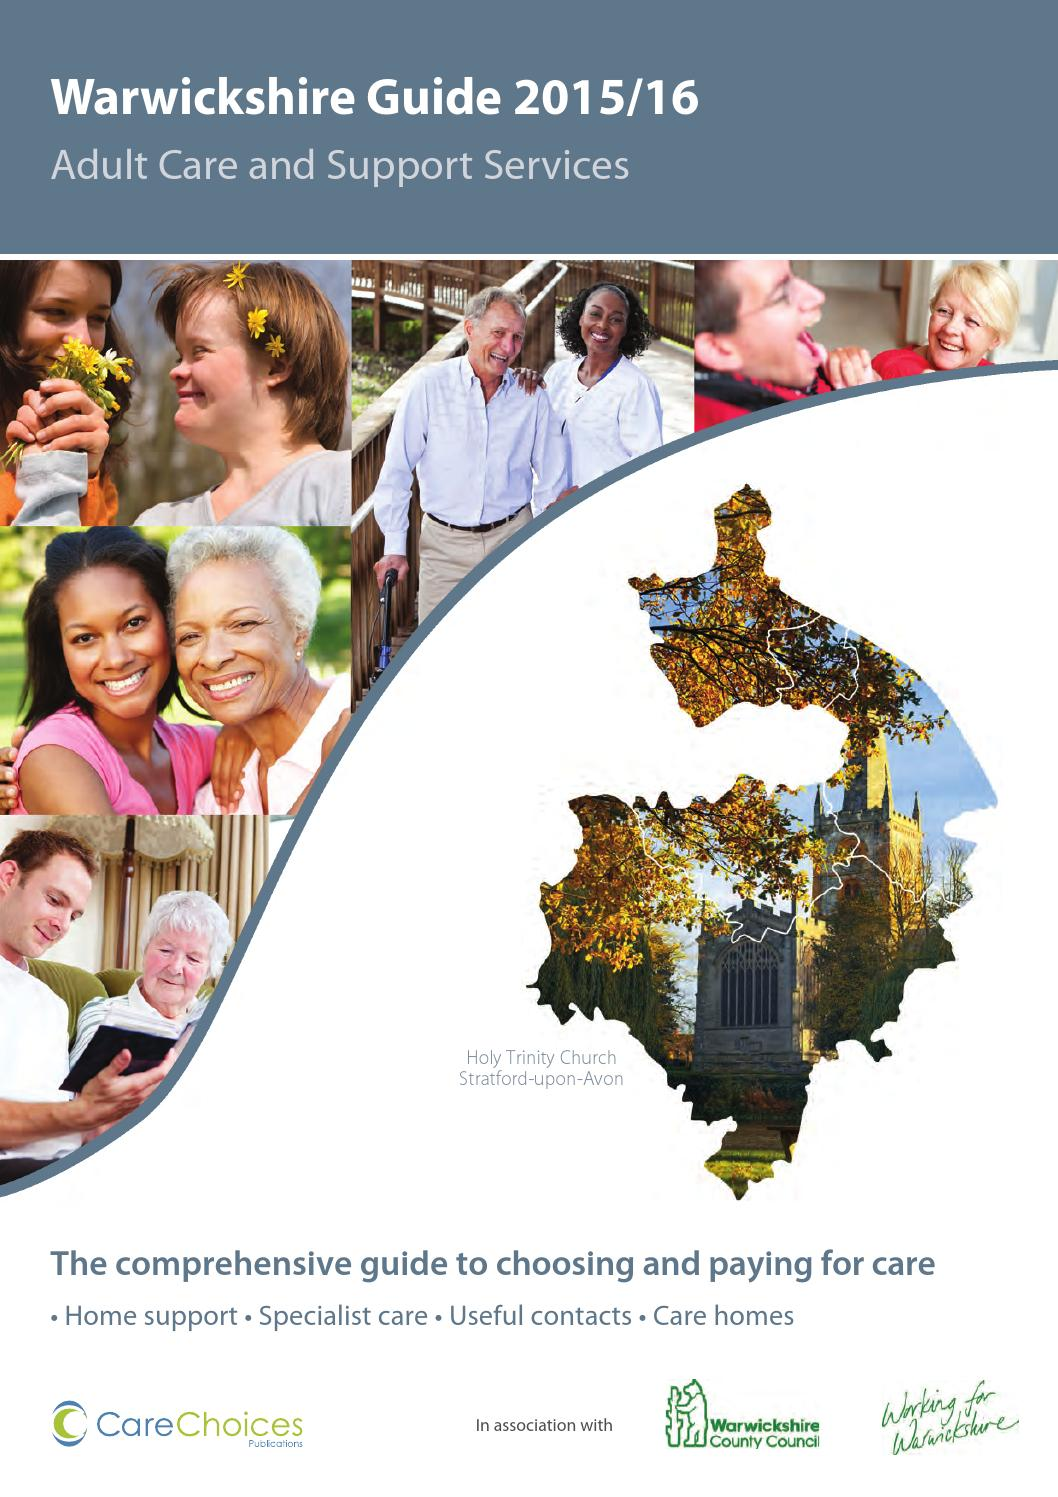 Lower meadow is a 40 capacity stratford care home that looks to take a - Warwickshire Adult Care And Support Services Guide 2015 16 By Care Choices Ltd Issuu